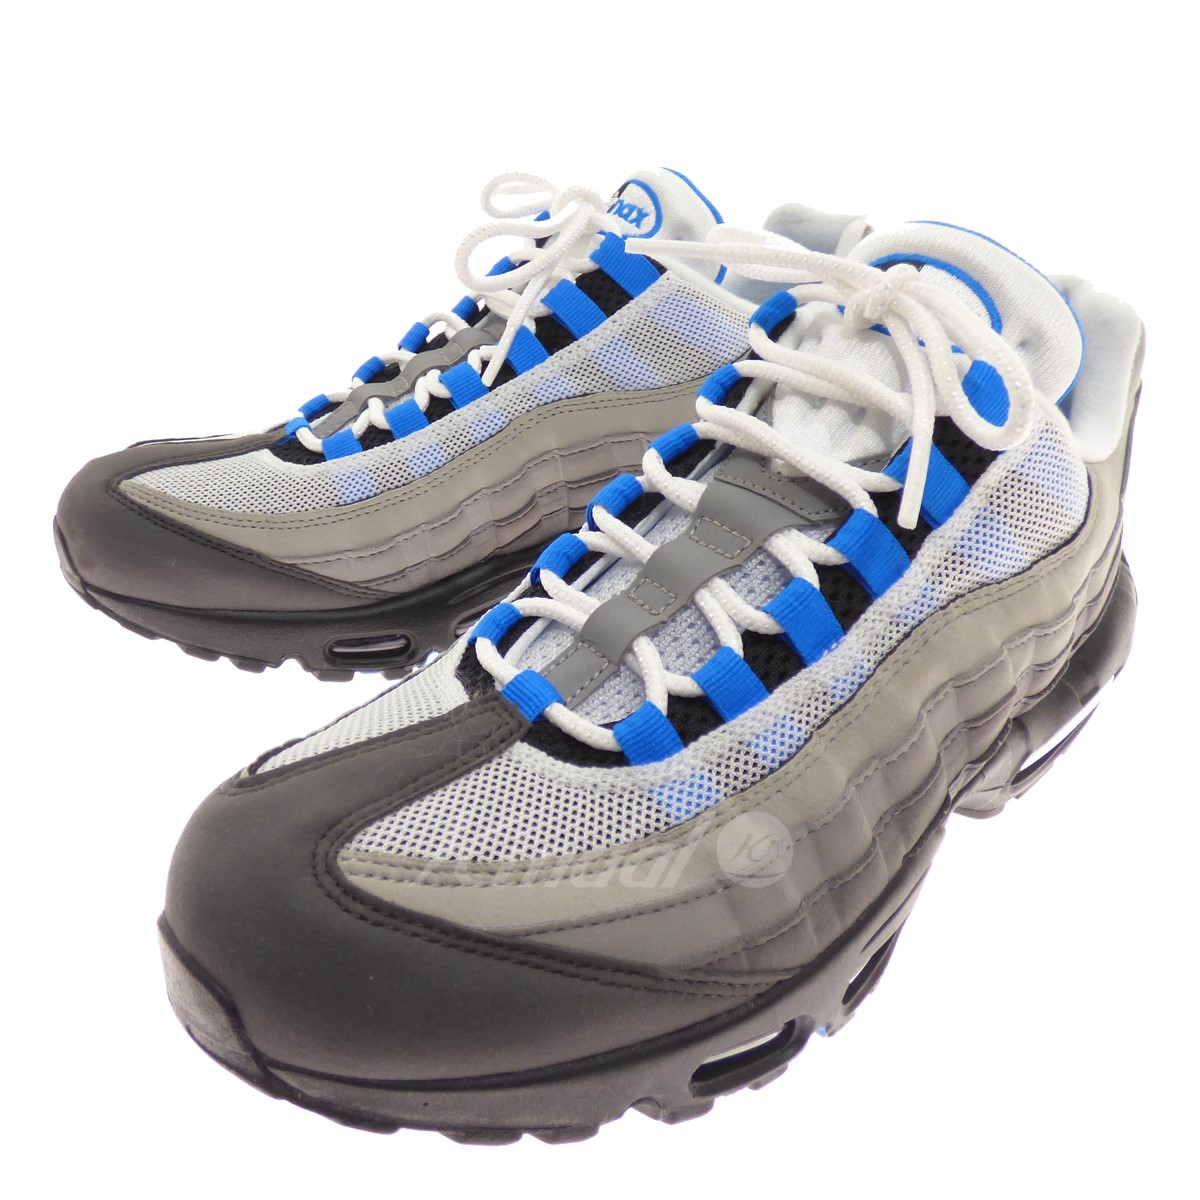 NIKE AIR MAX 95 CRYSTAL BLUE sneakers AT8696-100 blue size  27. 5cm (Nike) 046cf7127